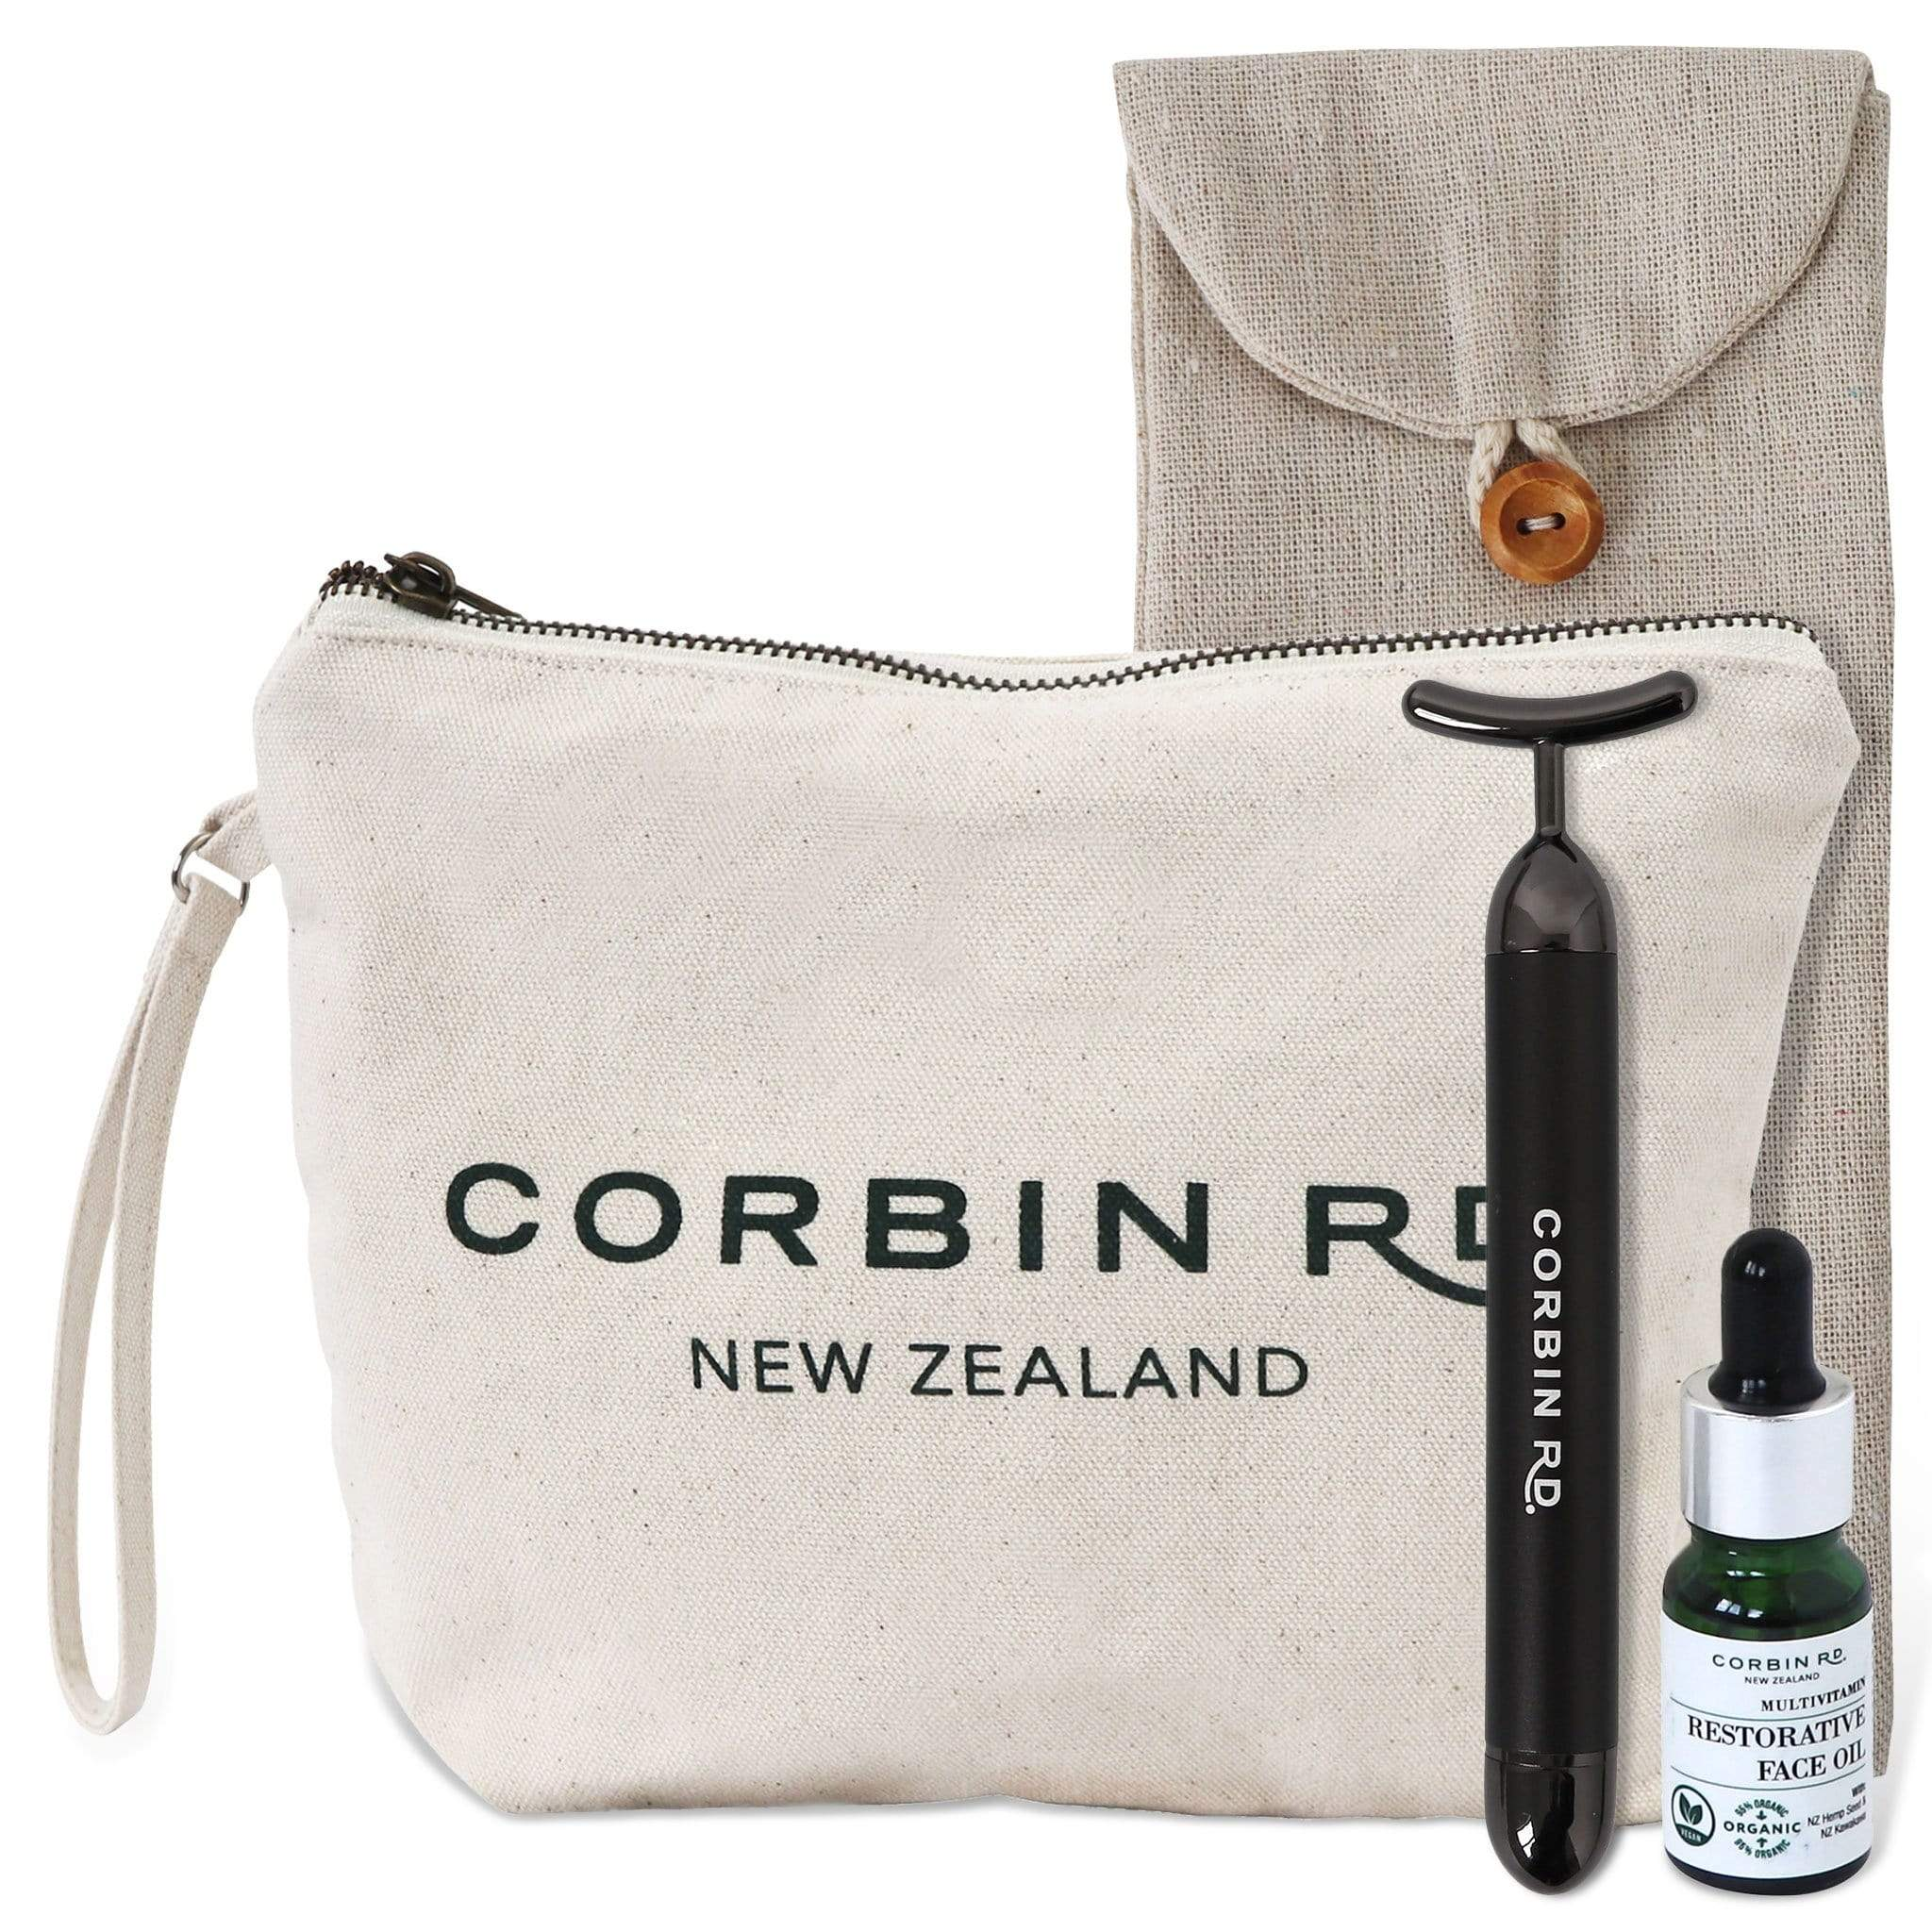 Corbin Rd Beauty Tool Gift Set -Sculpta 6000 + Mini Restorative Face Oil